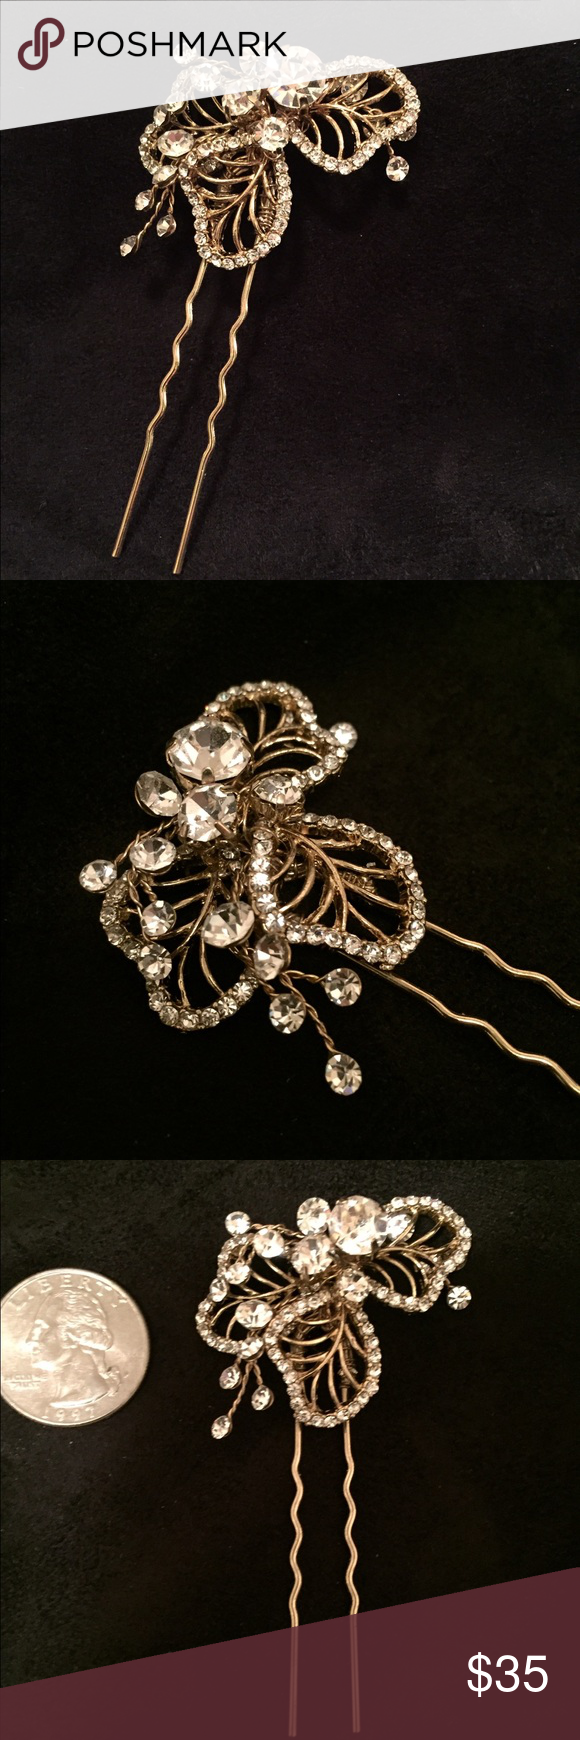 Gold and crystal hair pin prom u wedding perfect this beautiful